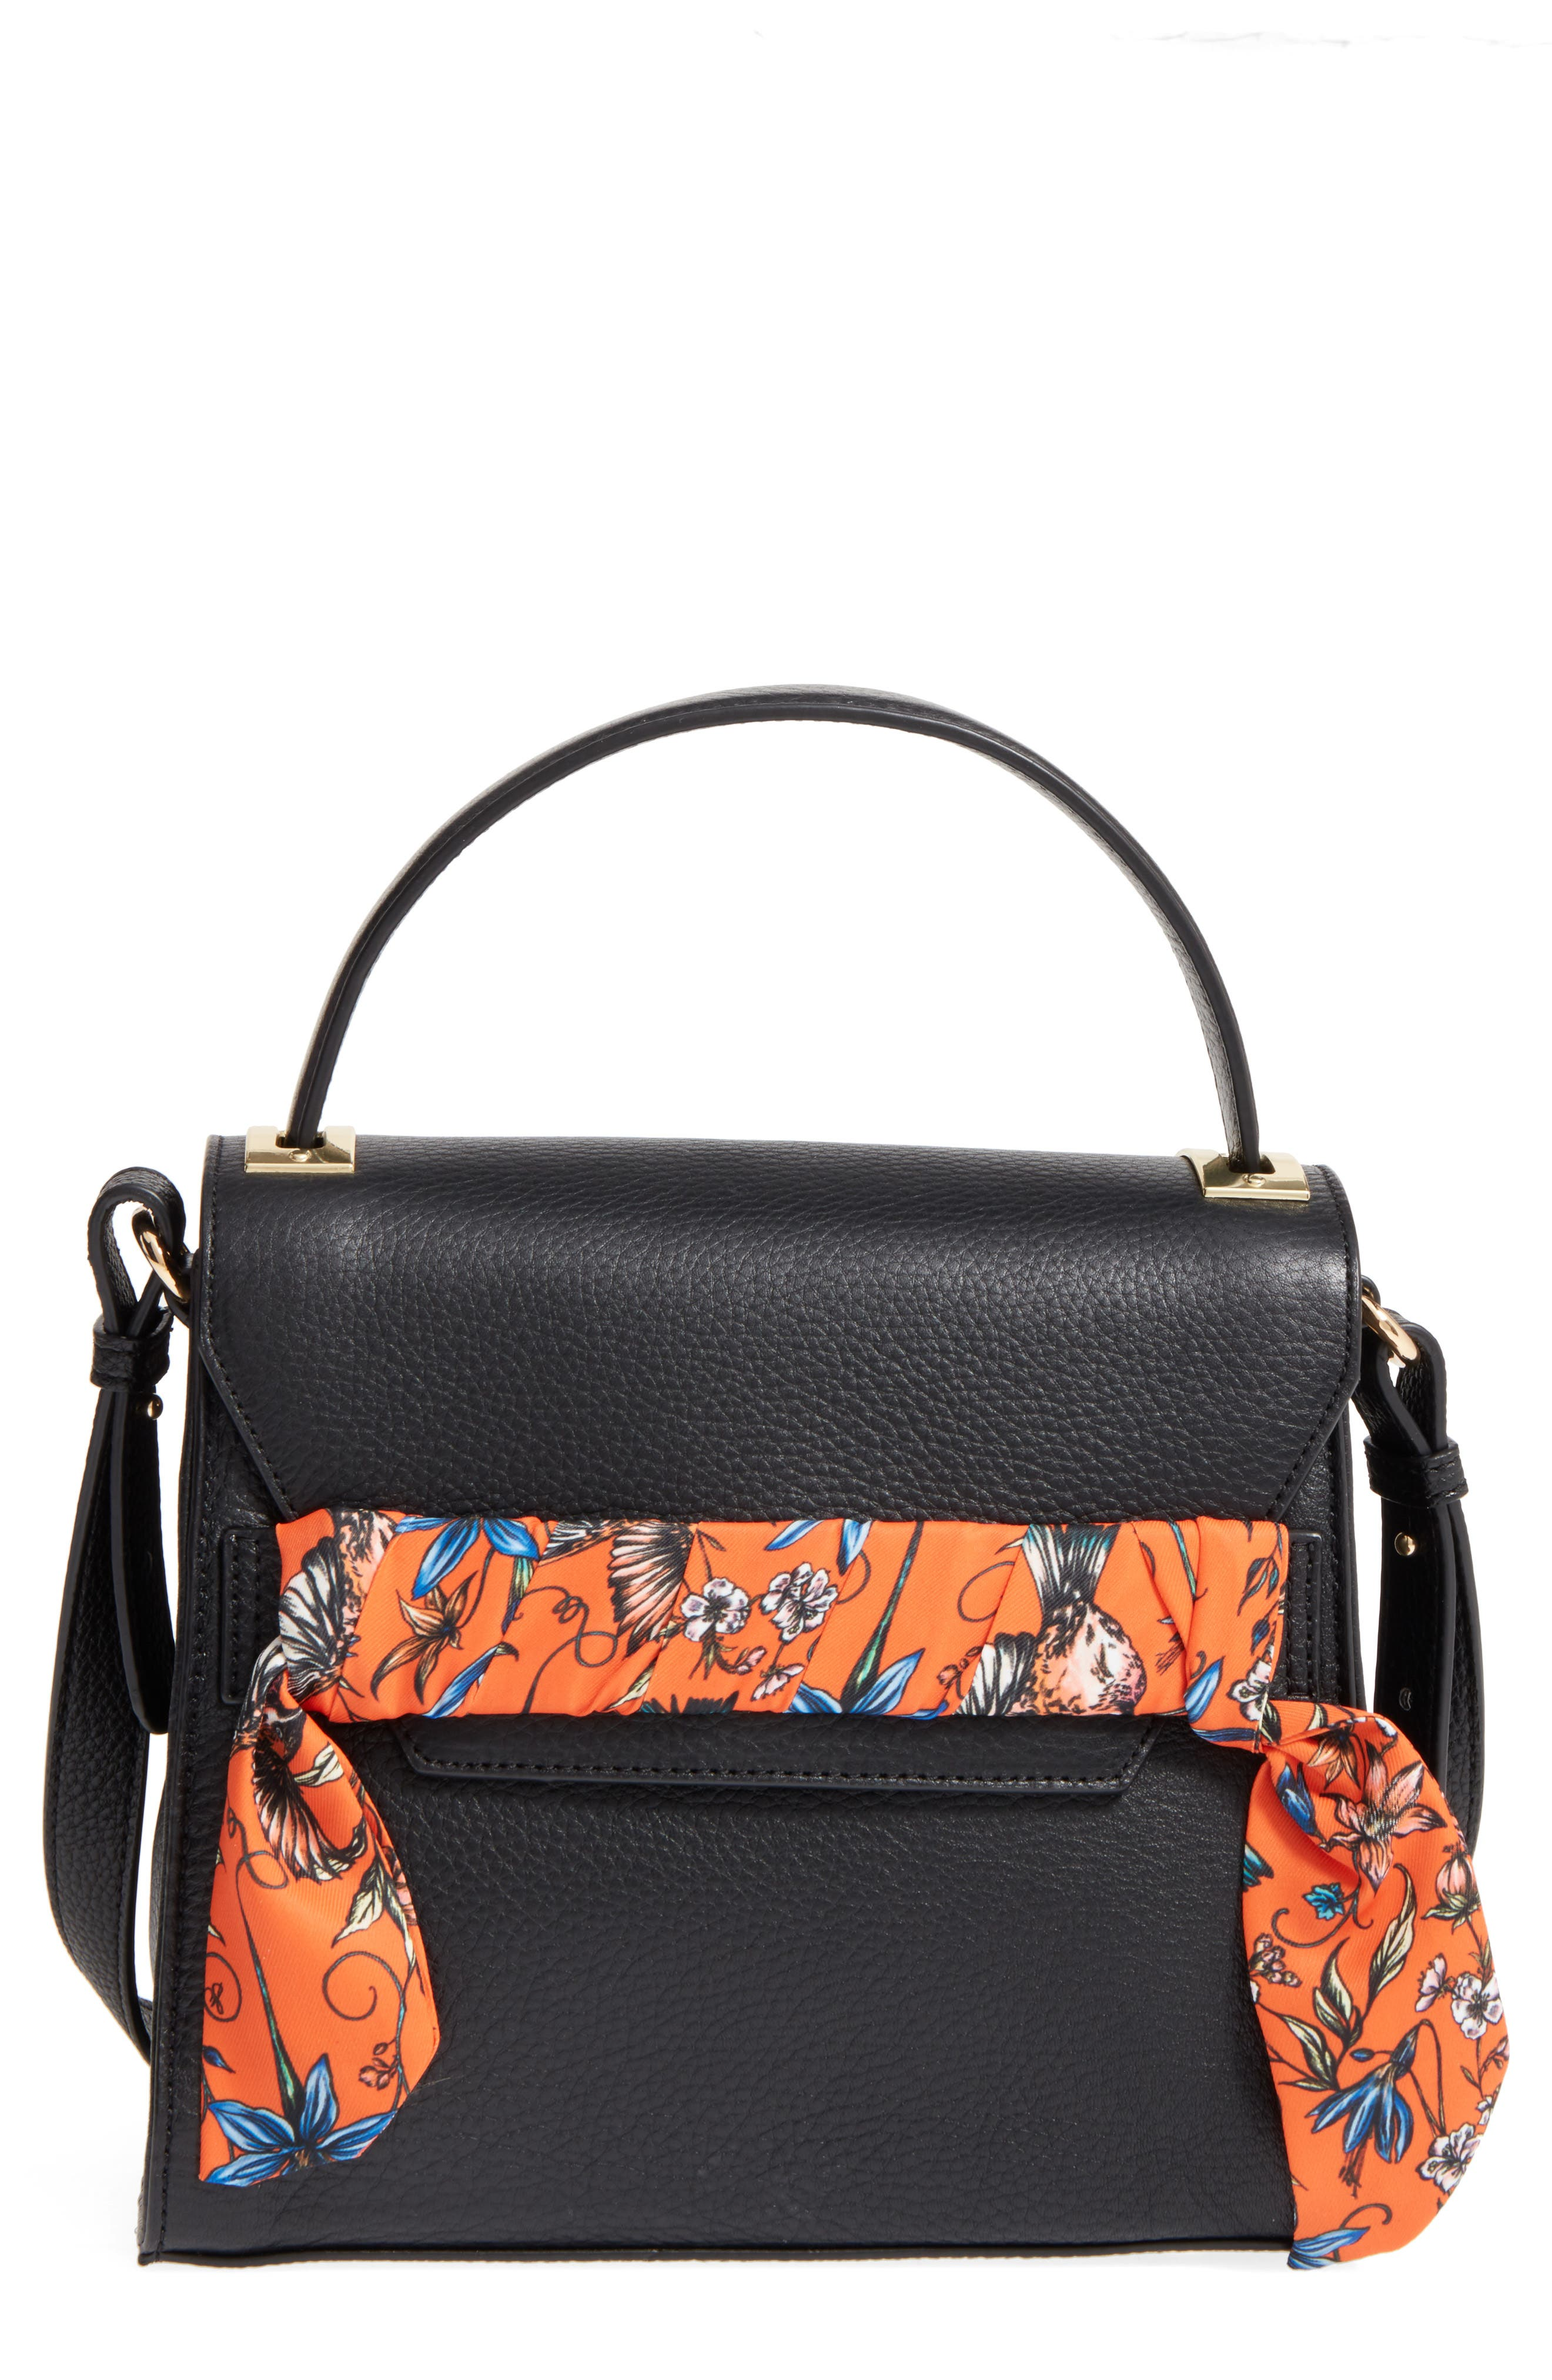 Alternate Image 1 Selected - Sam Edelman Mia Calfskin Top Handle Satchel